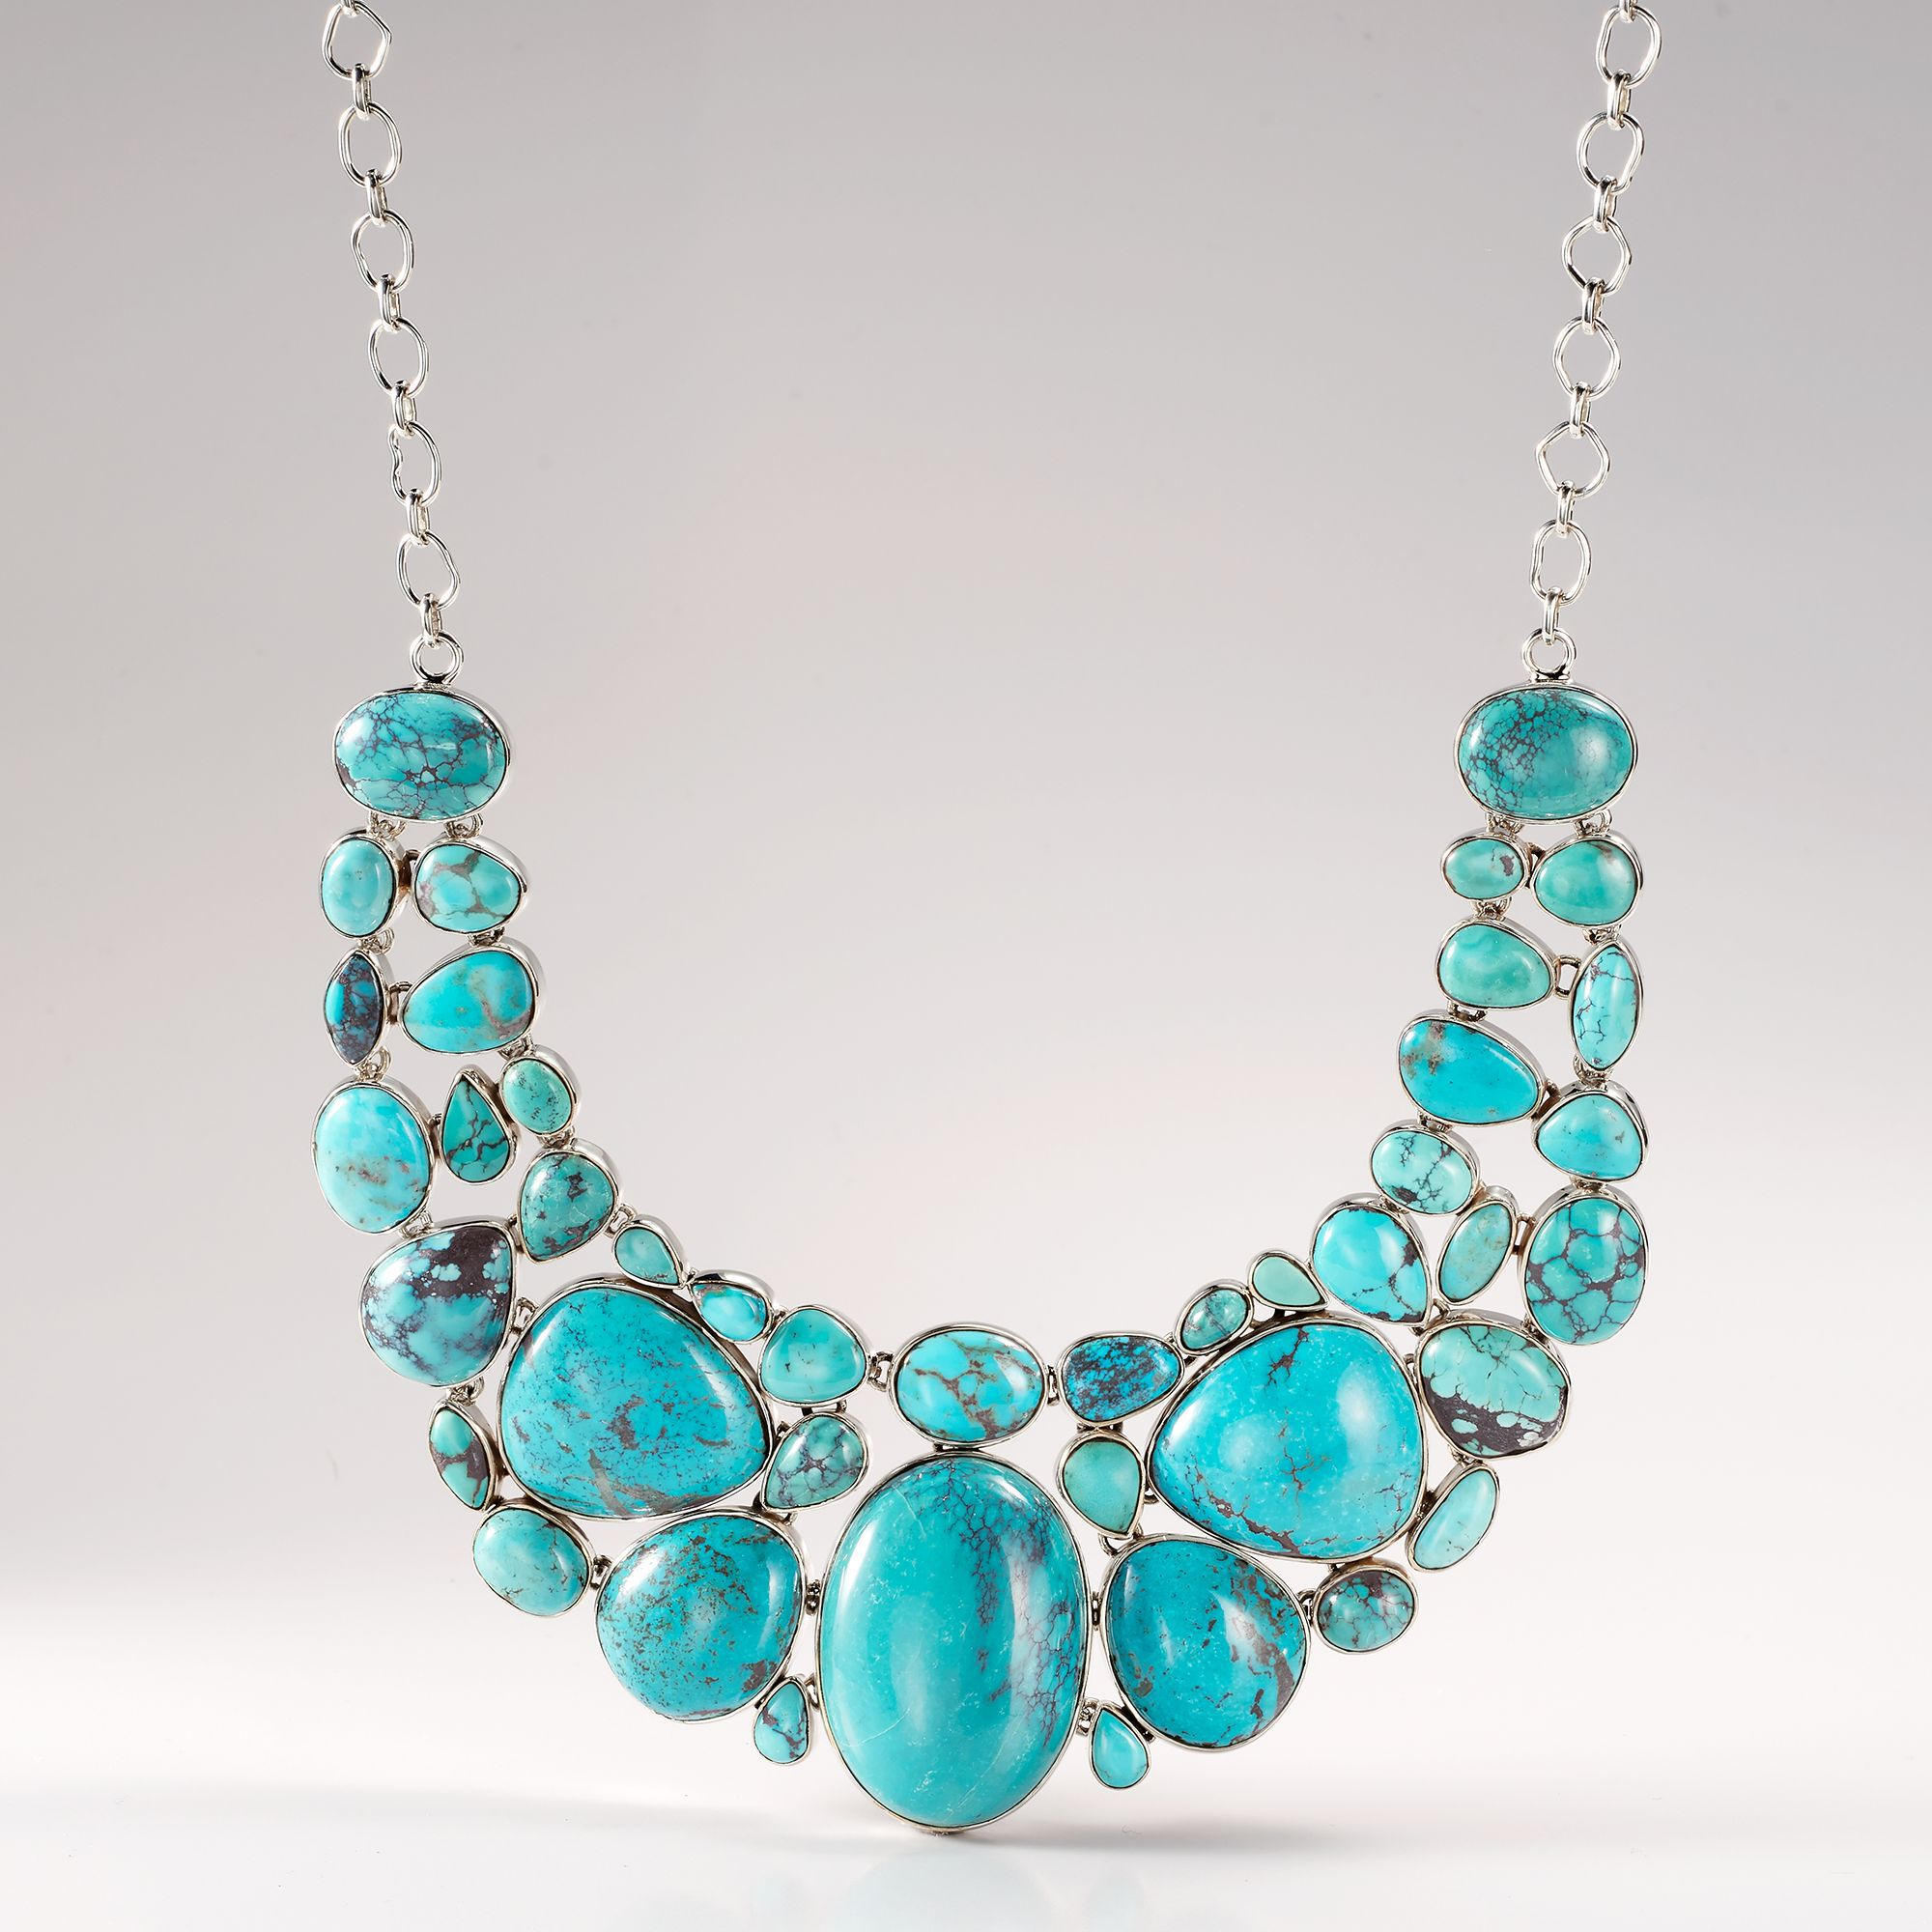 Turquoise Bib Necklace in Sterling Silver. 18